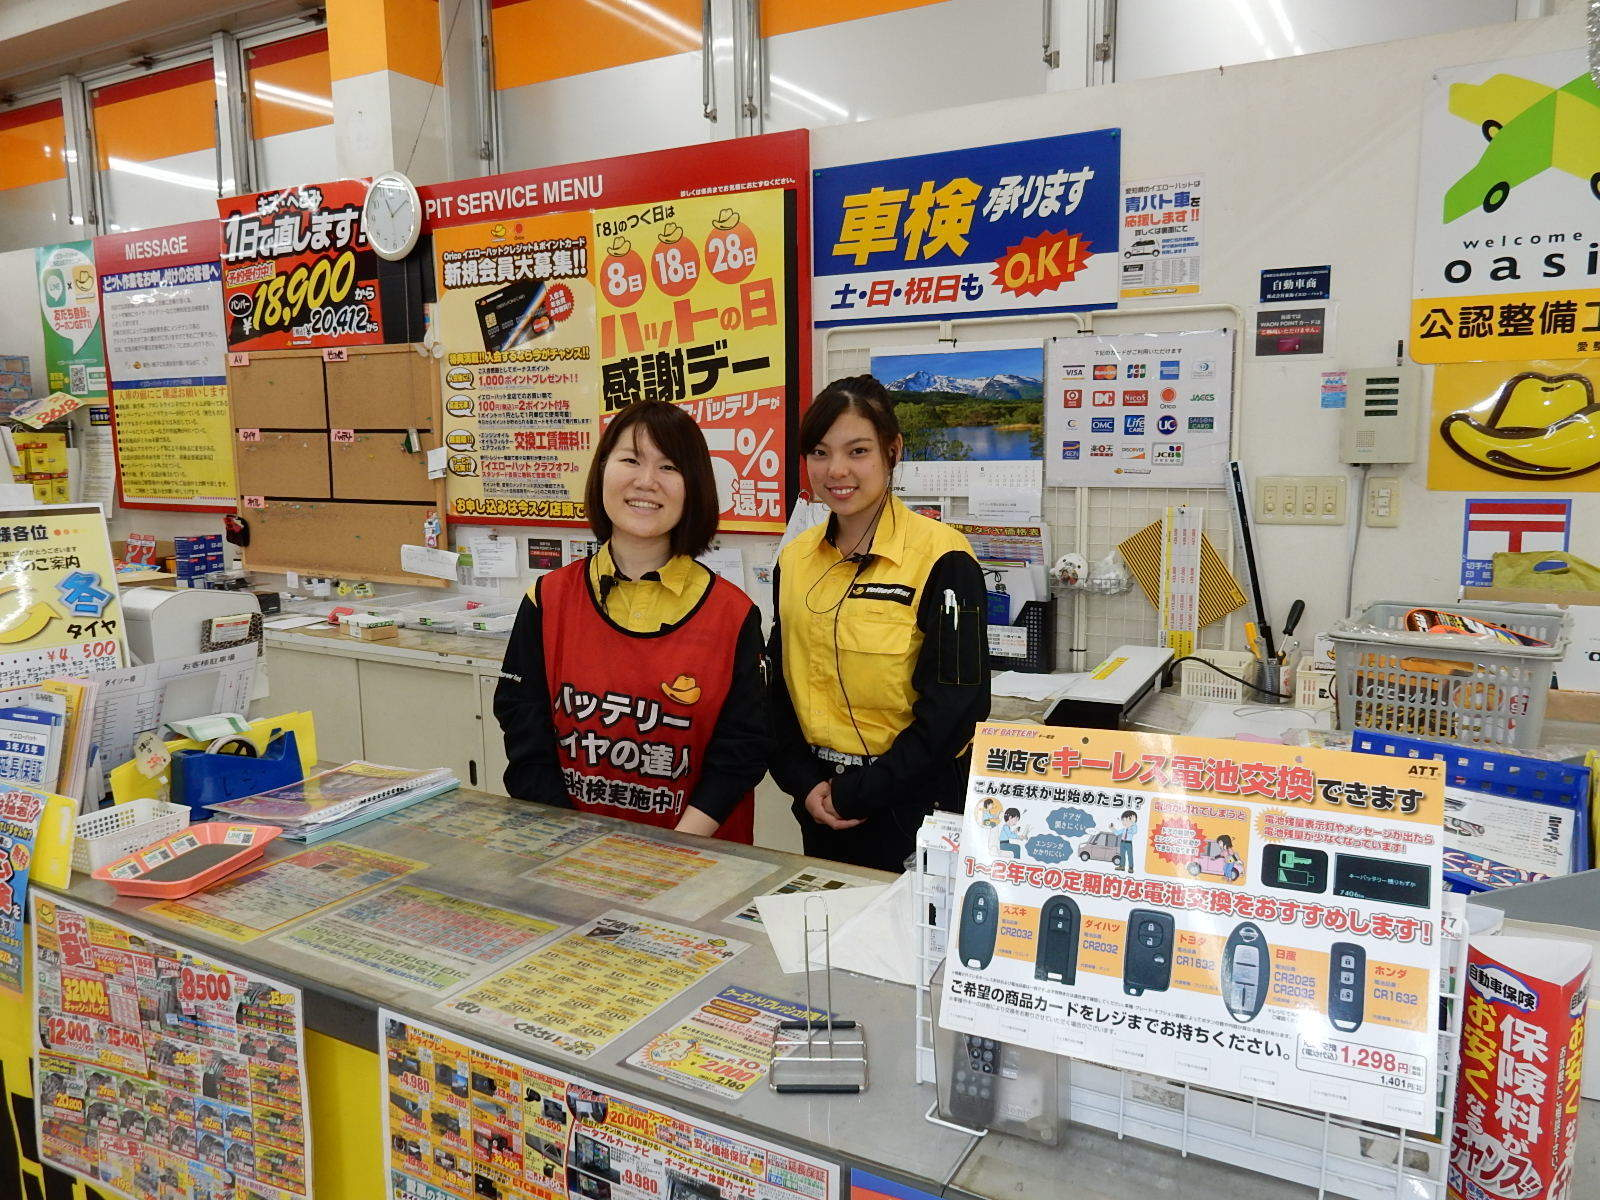 【Tokai Store】Part time Store Sales and Car Maintenance Staff needed in Aichi-ken Toukai-shi!